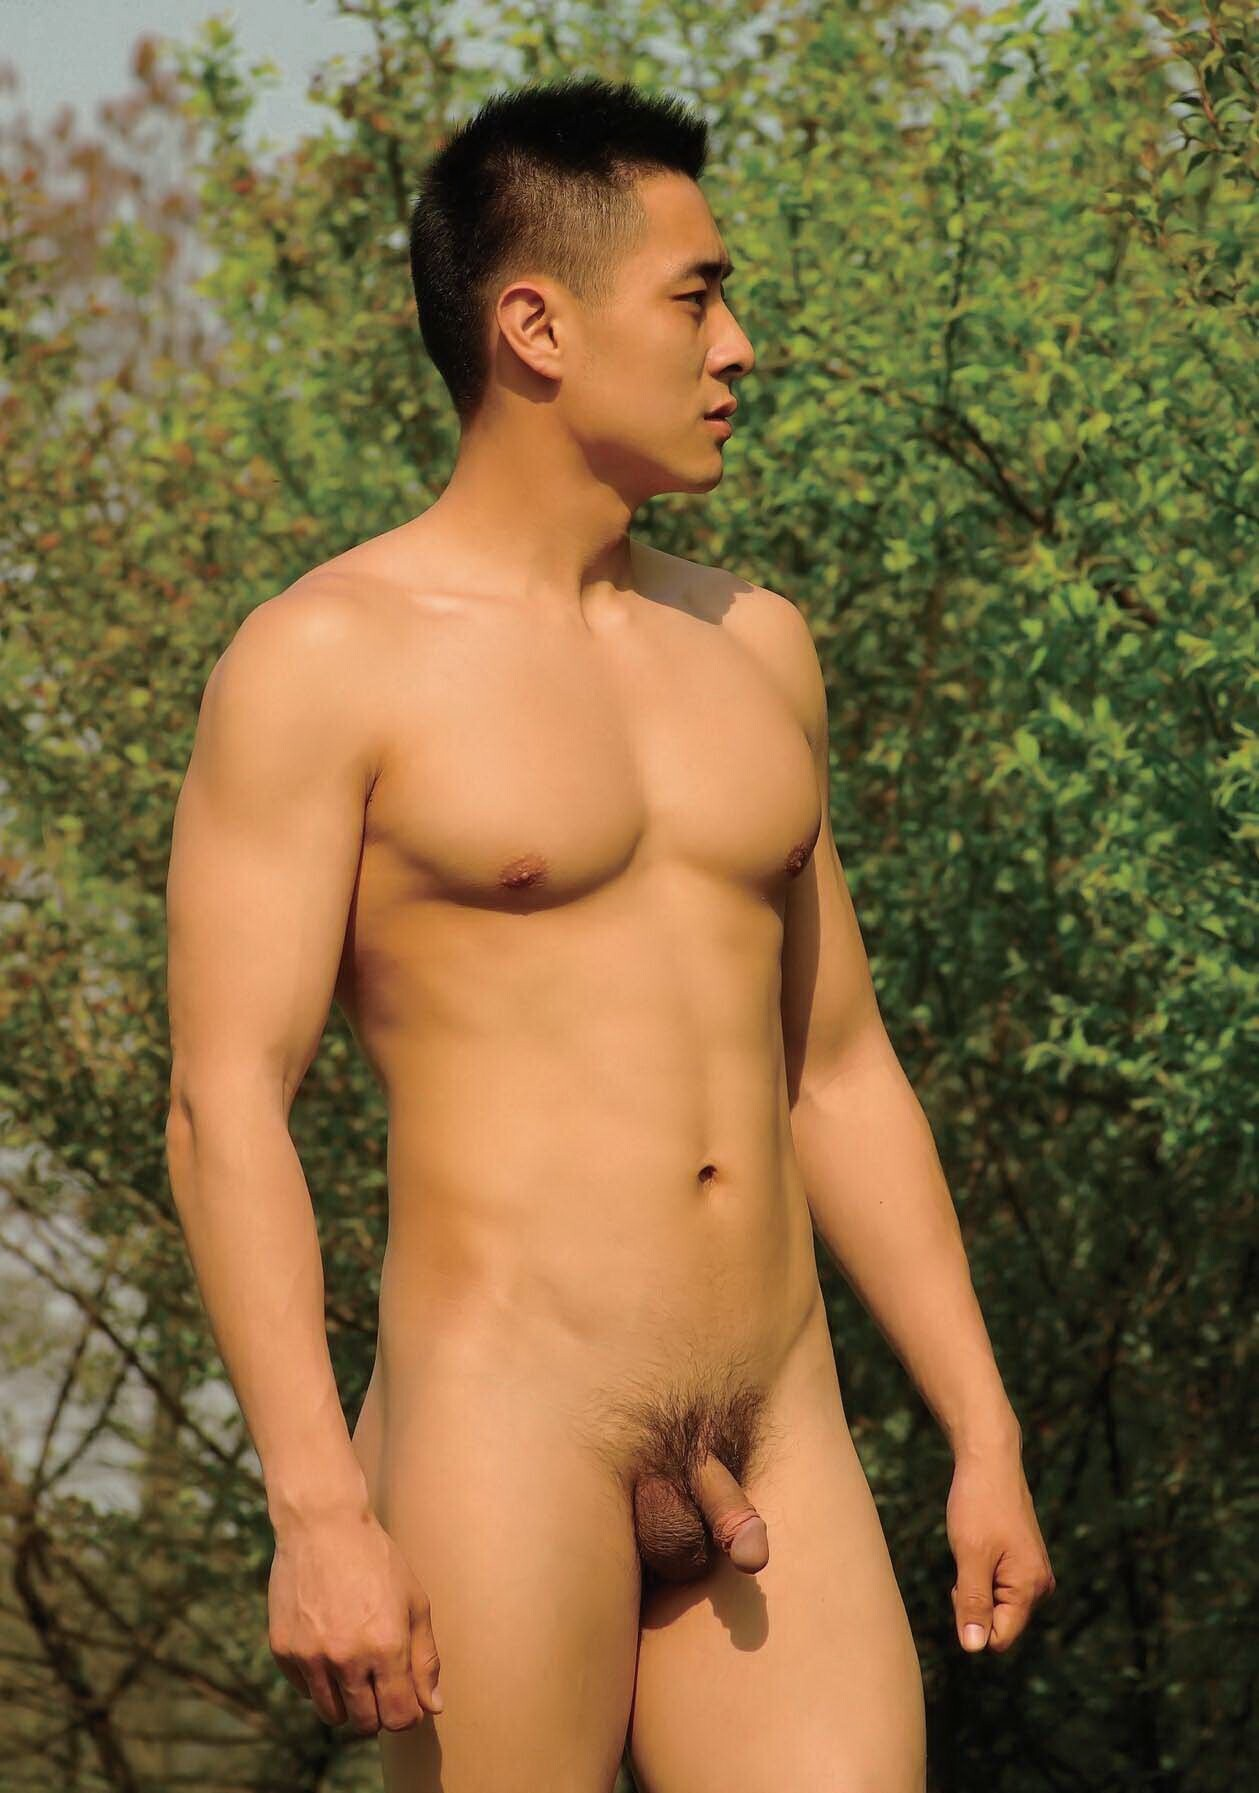 knowles-naked-asian-men-pics